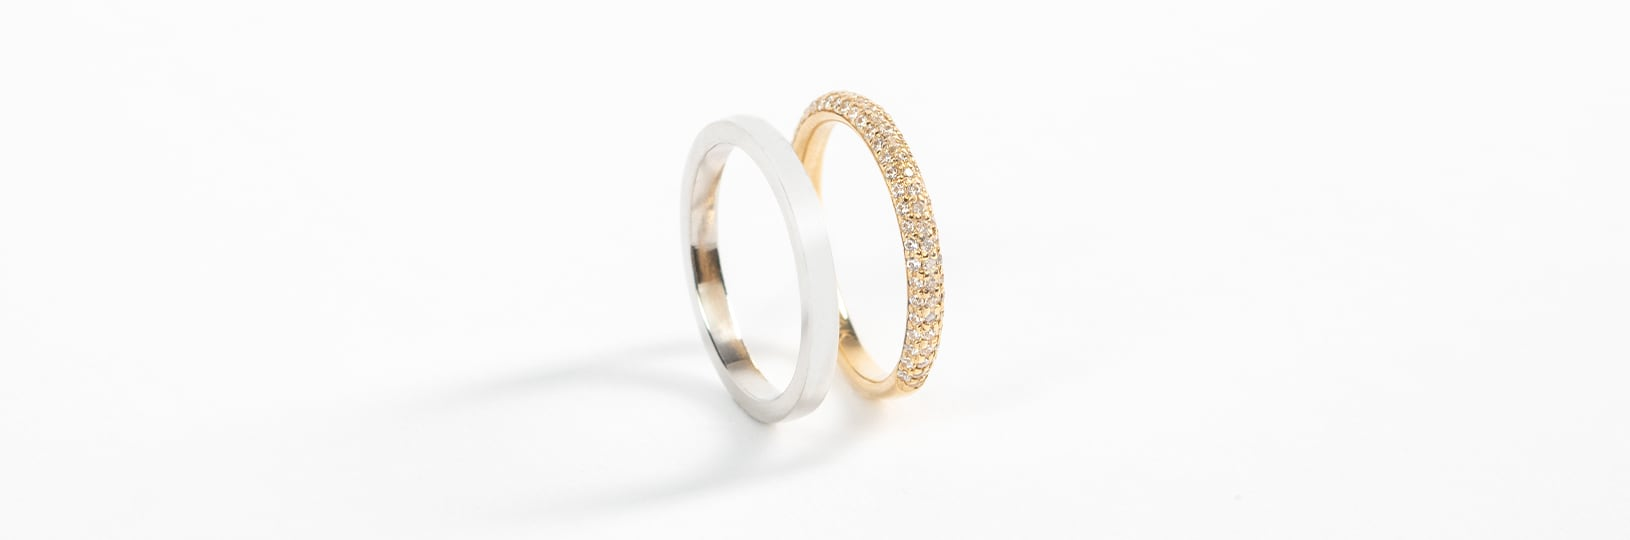 promise ring examples